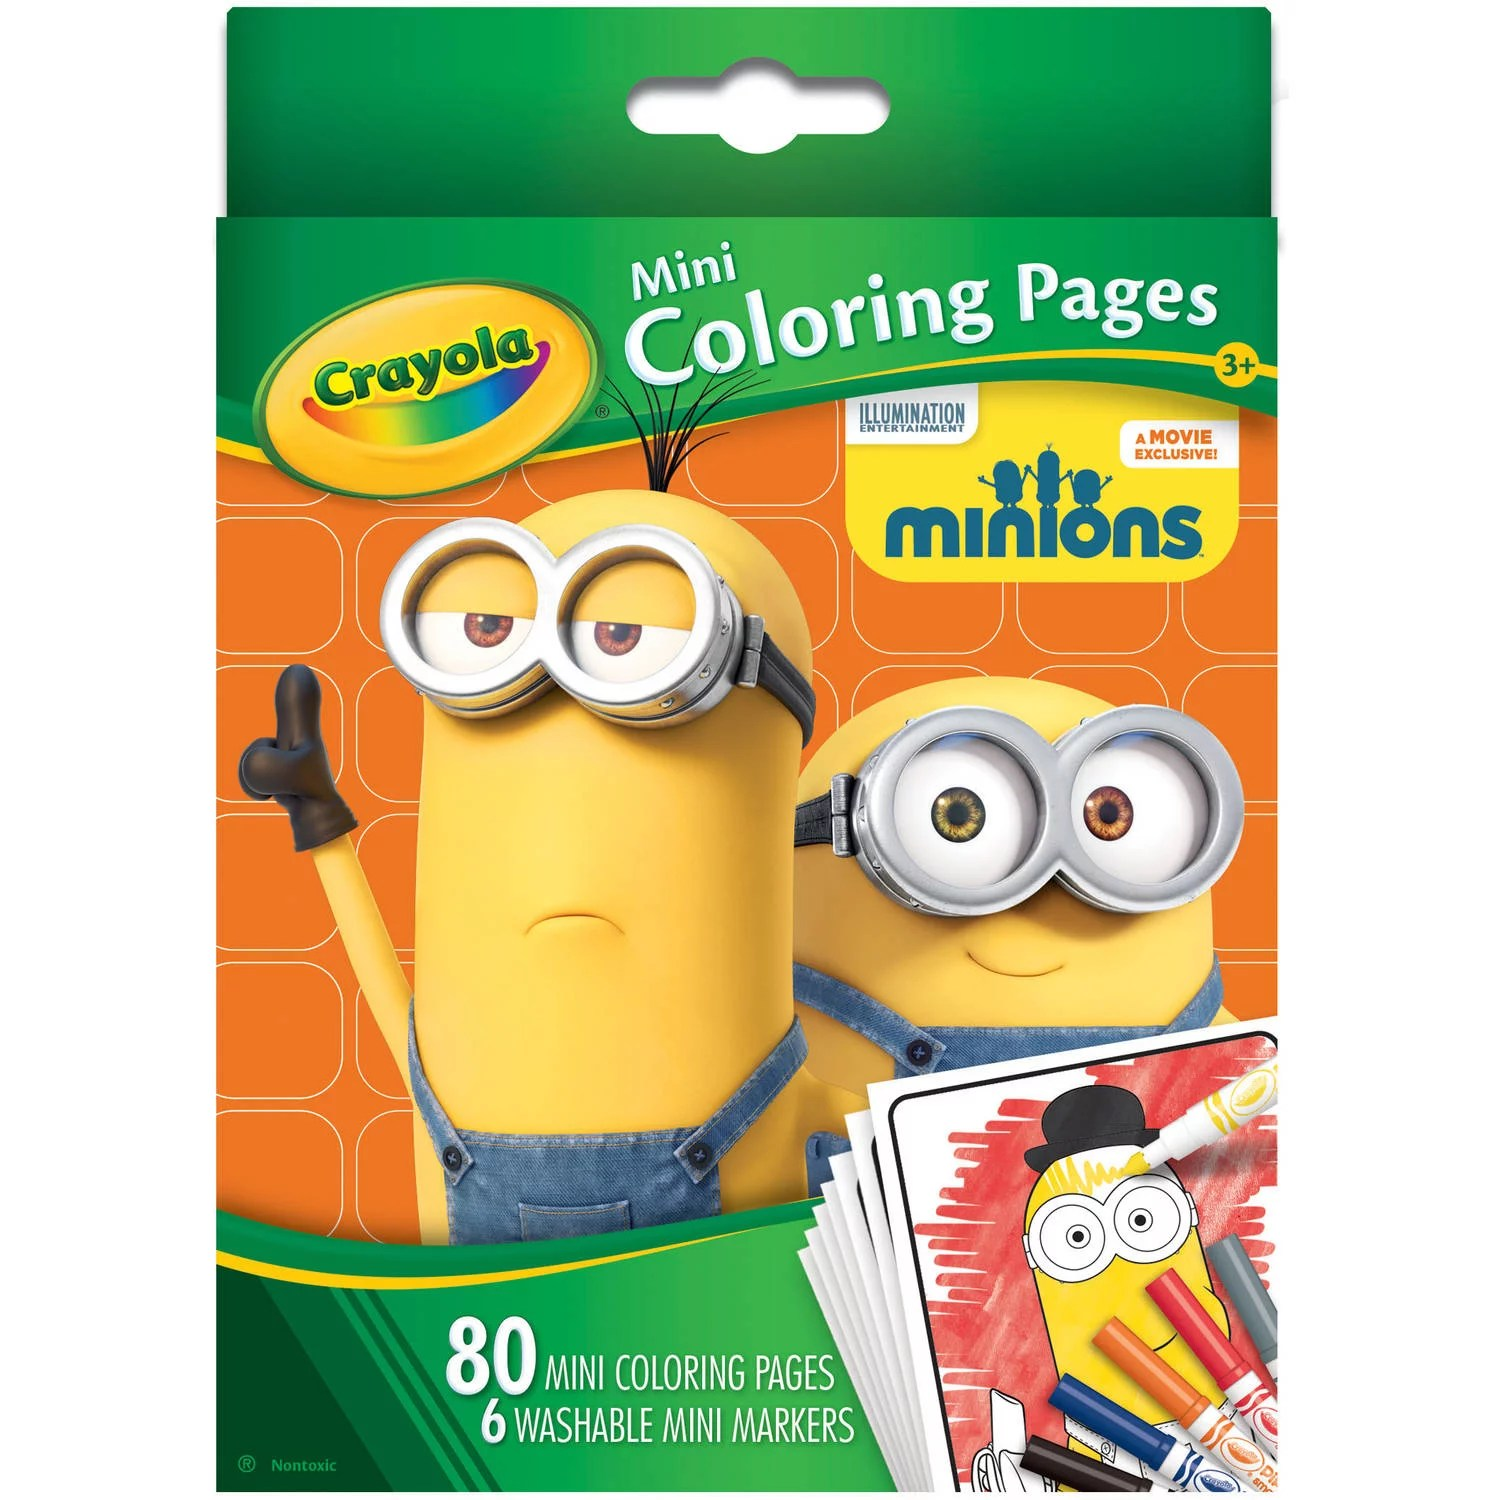 Crayola Minions T Set Includes Crayola Minions Ultimate Art Case Minions Mini Coloring Pages